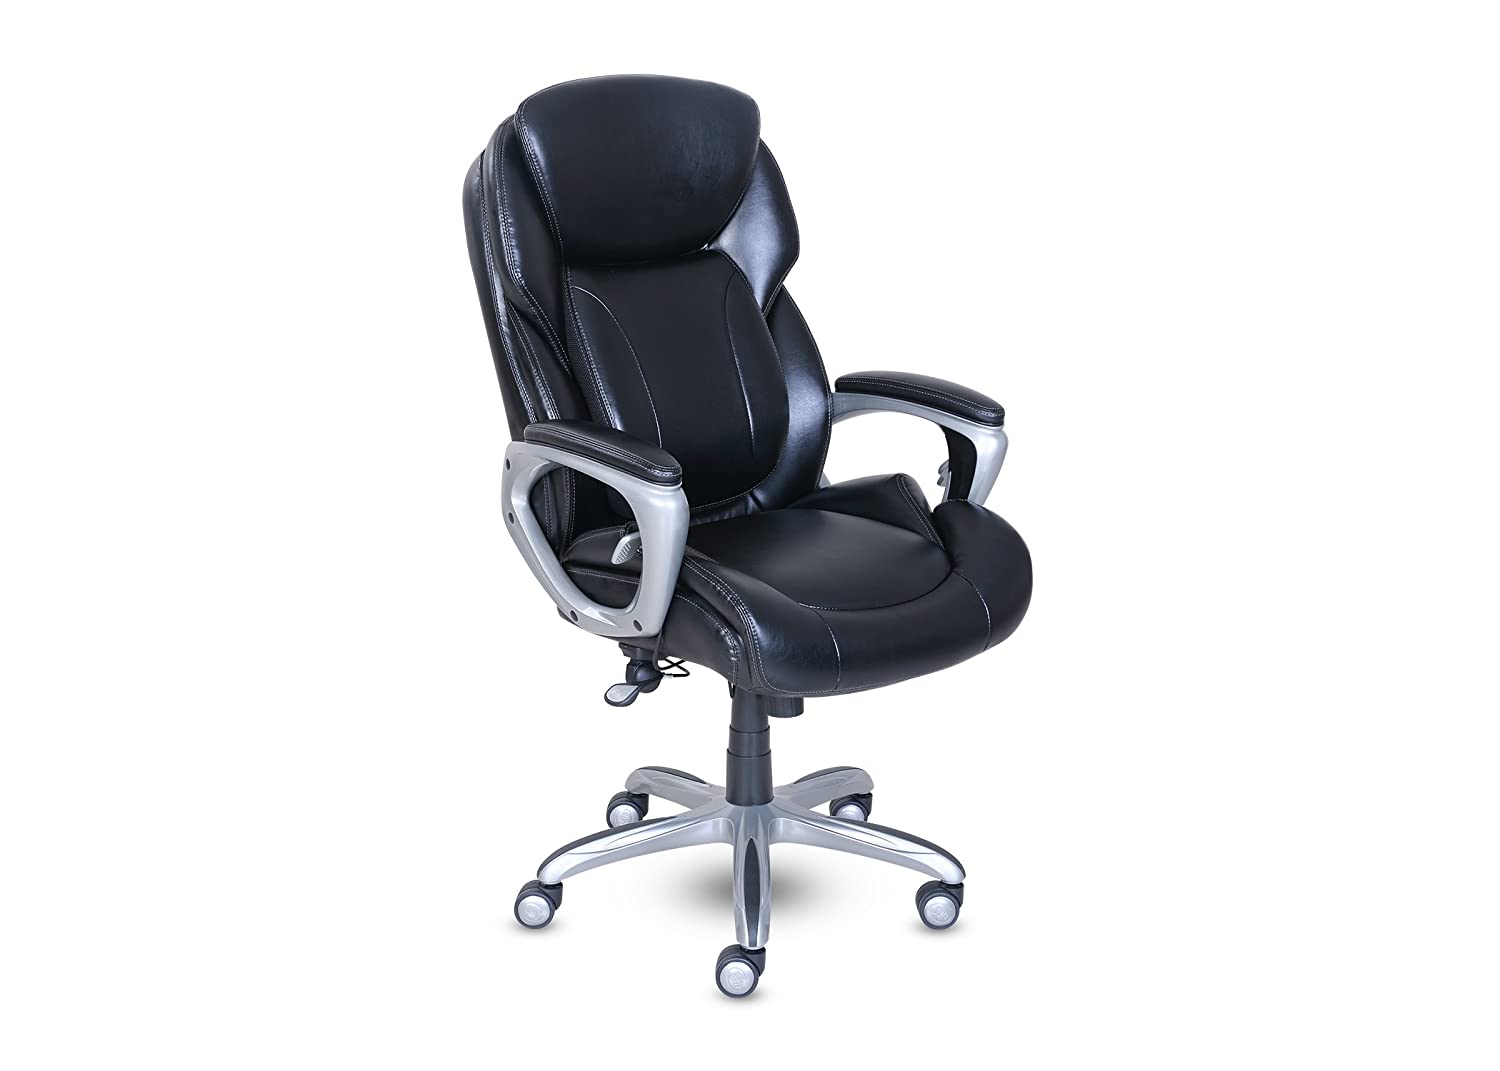 Serta My Fit Executive Office Chair with 360 Motion Support, Black Millwork Holdings Co. Inc. 48096